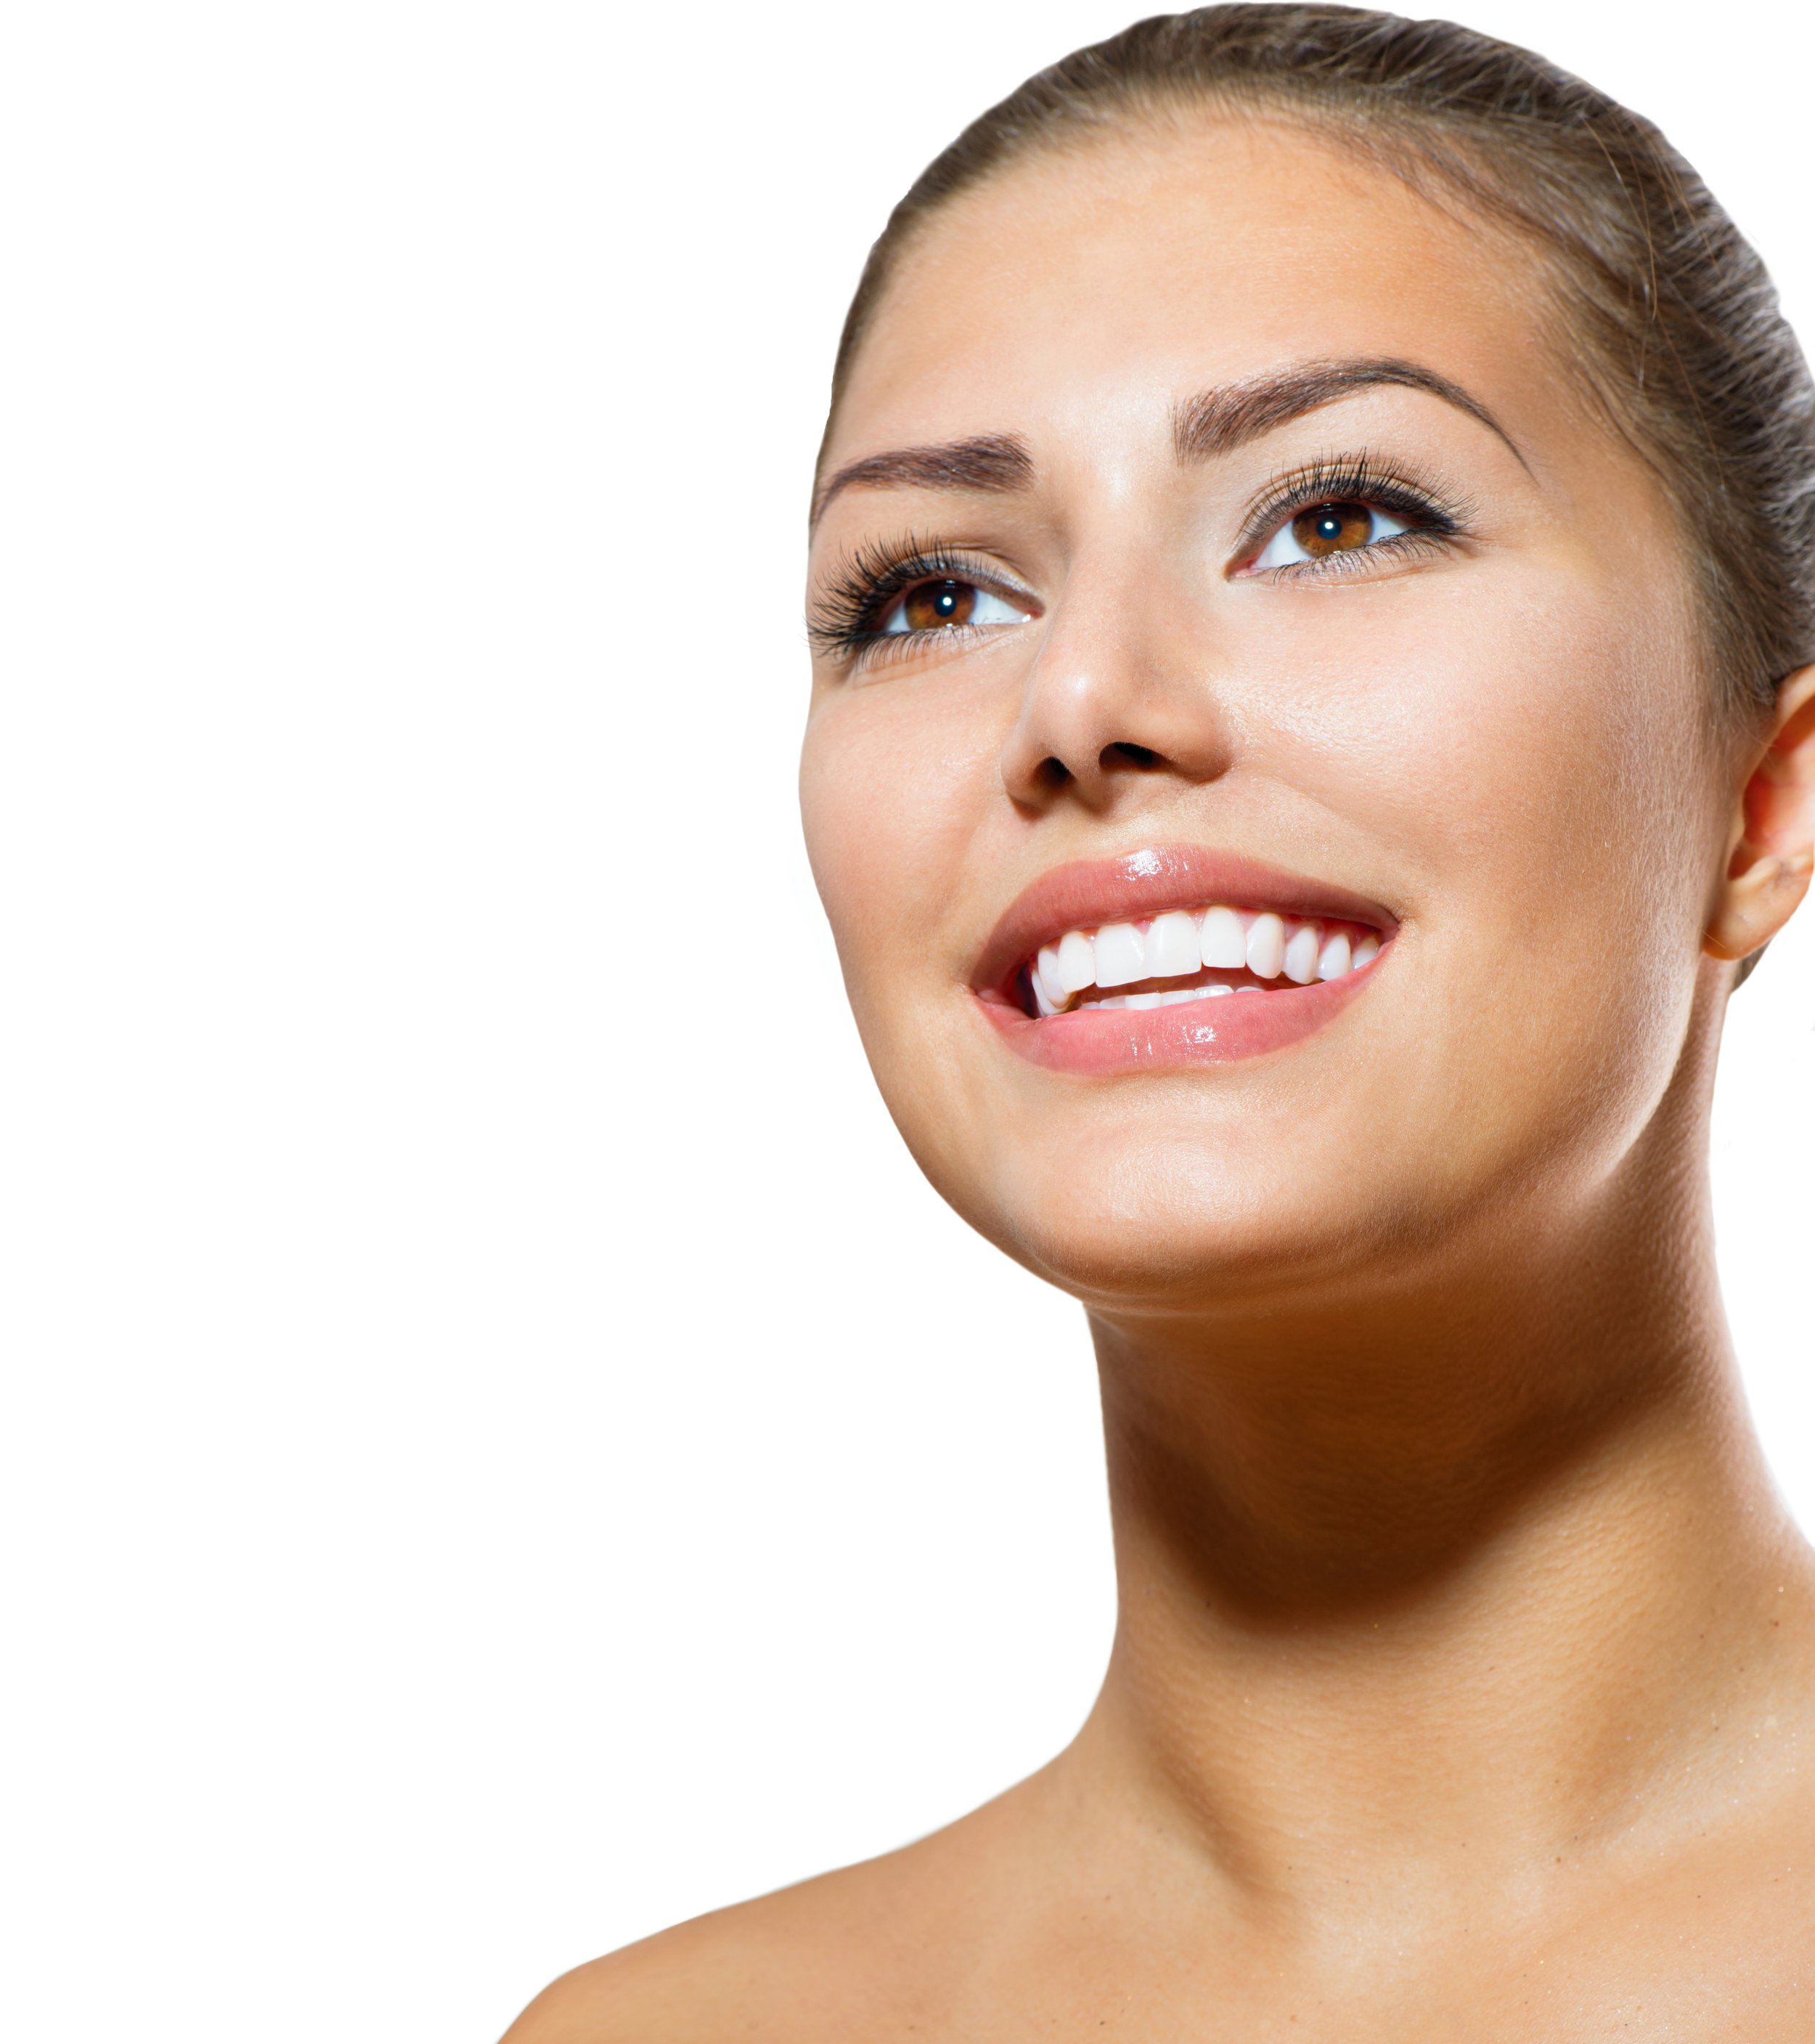 FREE Consultation - You are always welcome to visit our office for a Free Consultation visit to ask the dentist and see if you are qualified for this exciting whitening dental visit. After your initial oral exam, the complete treatment takes just one office visit.